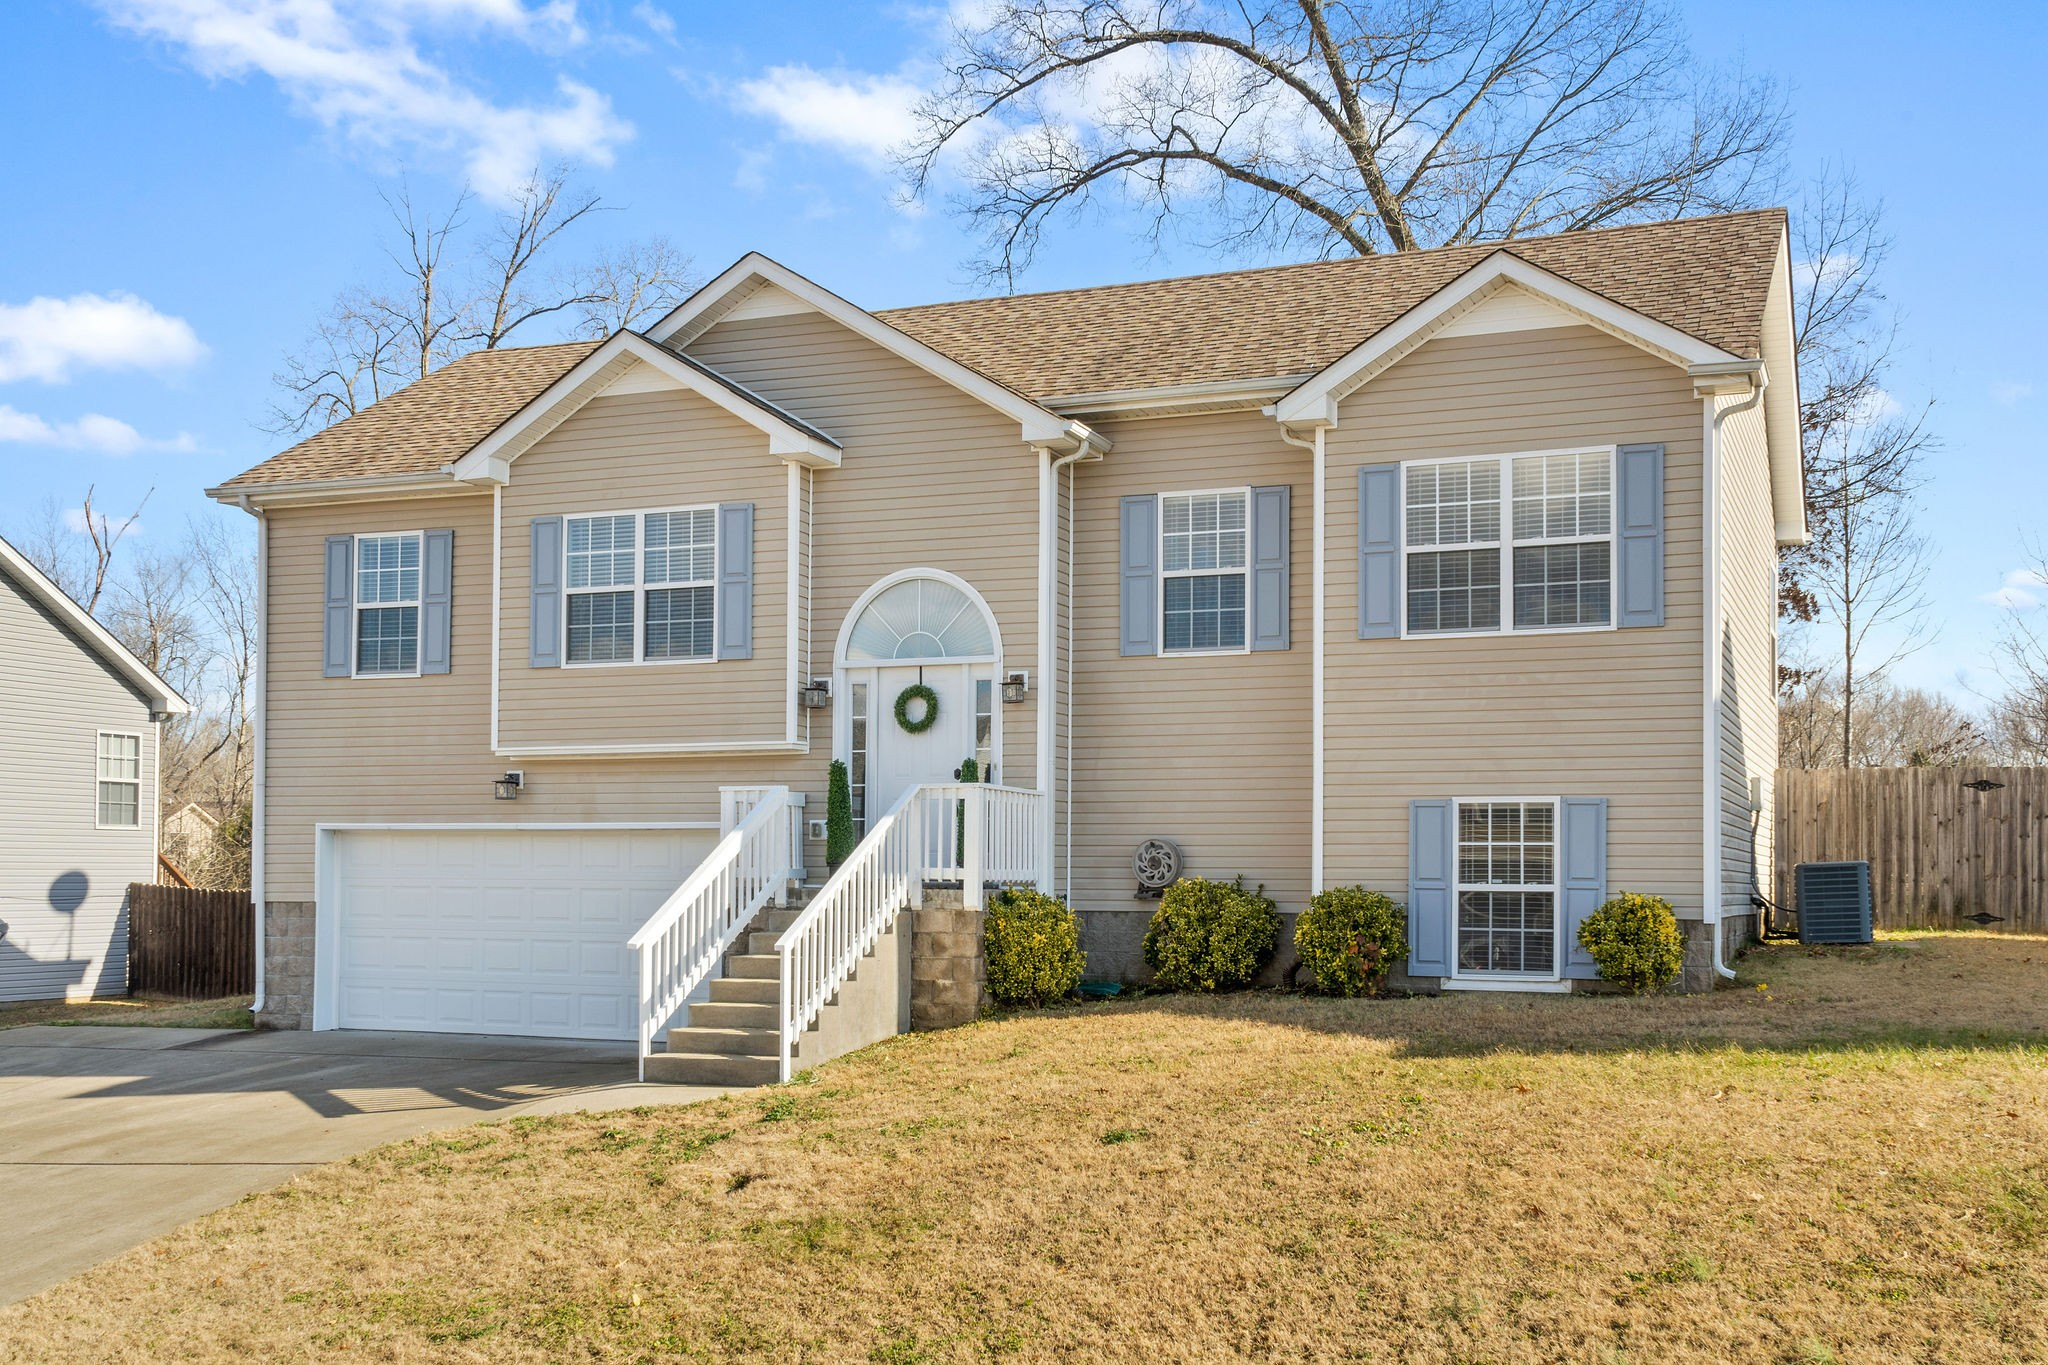 Check Out This Spacious Home Located Minutes from Gate 10 - NEW Carpet - NEW Paint - Ceramic Tile Floors - Real Hardwood Floors in Dining Room - All Stainless Steel Kitchen Appliances Convey - Move In Ready! Full Privacy Fenced Back Yard That Overlooks The Neighborhood Pond